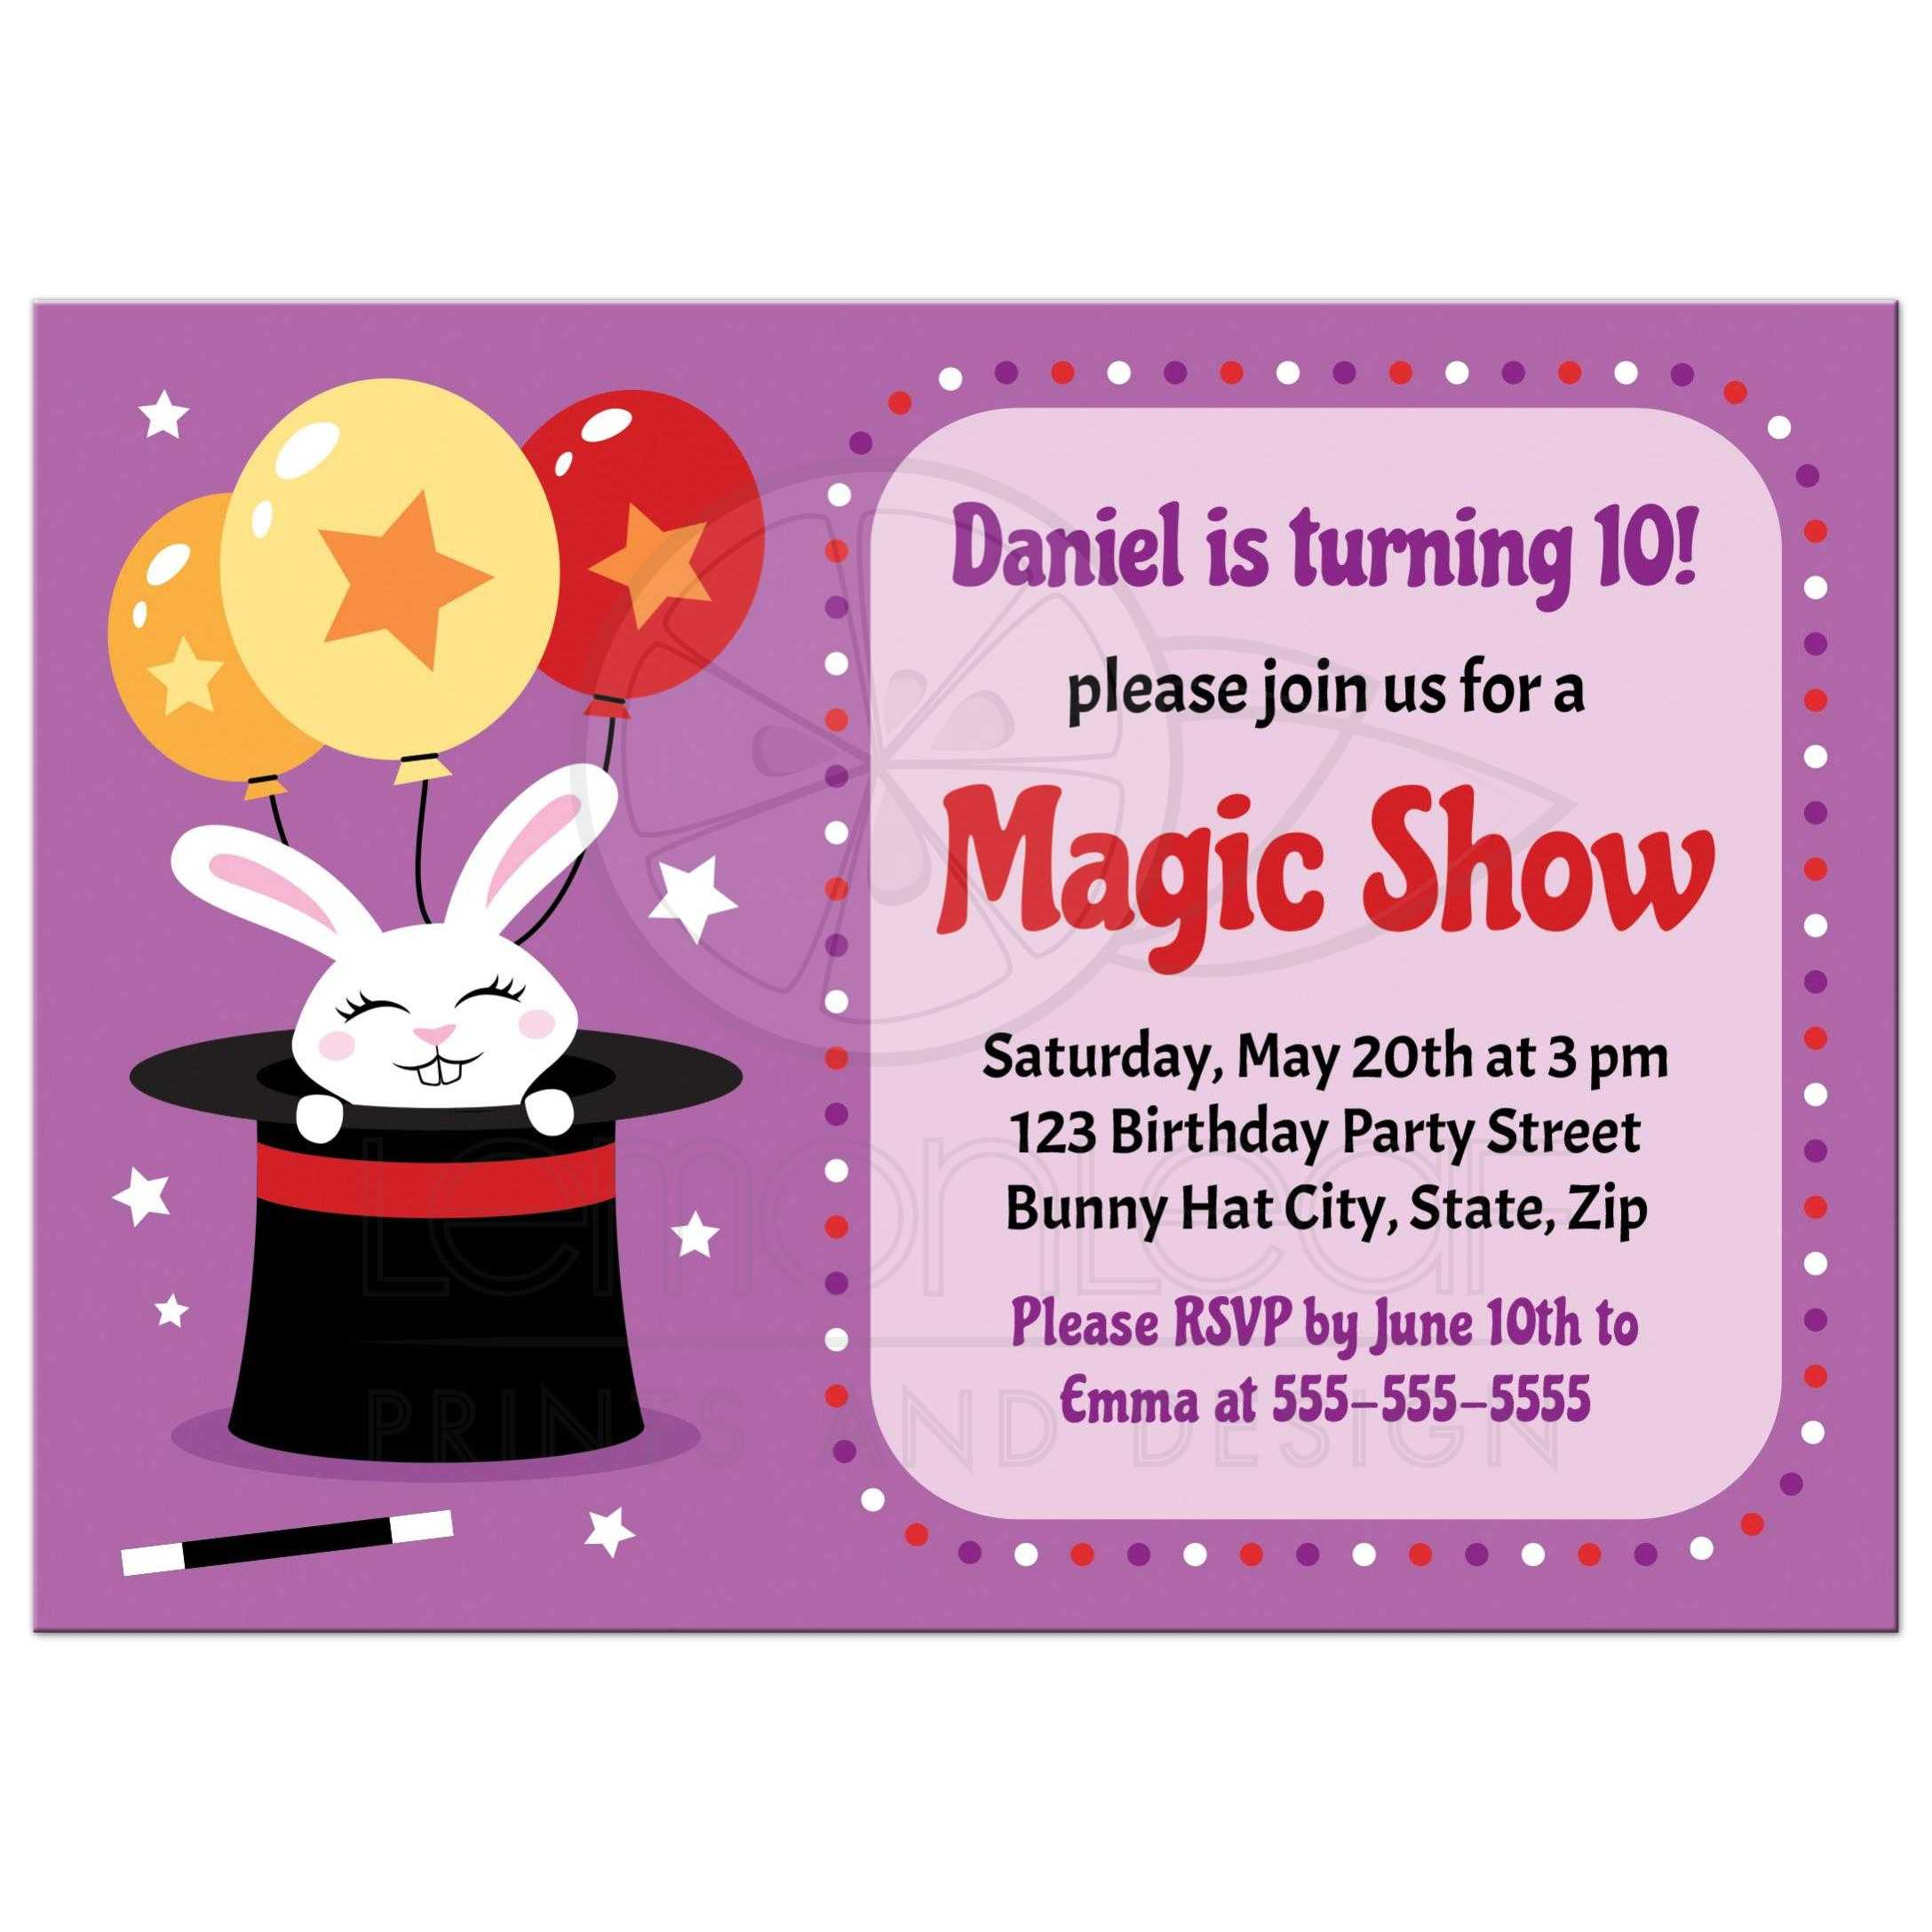 Rabbit in magician\'s hat, magic show birthday party invitations for kids